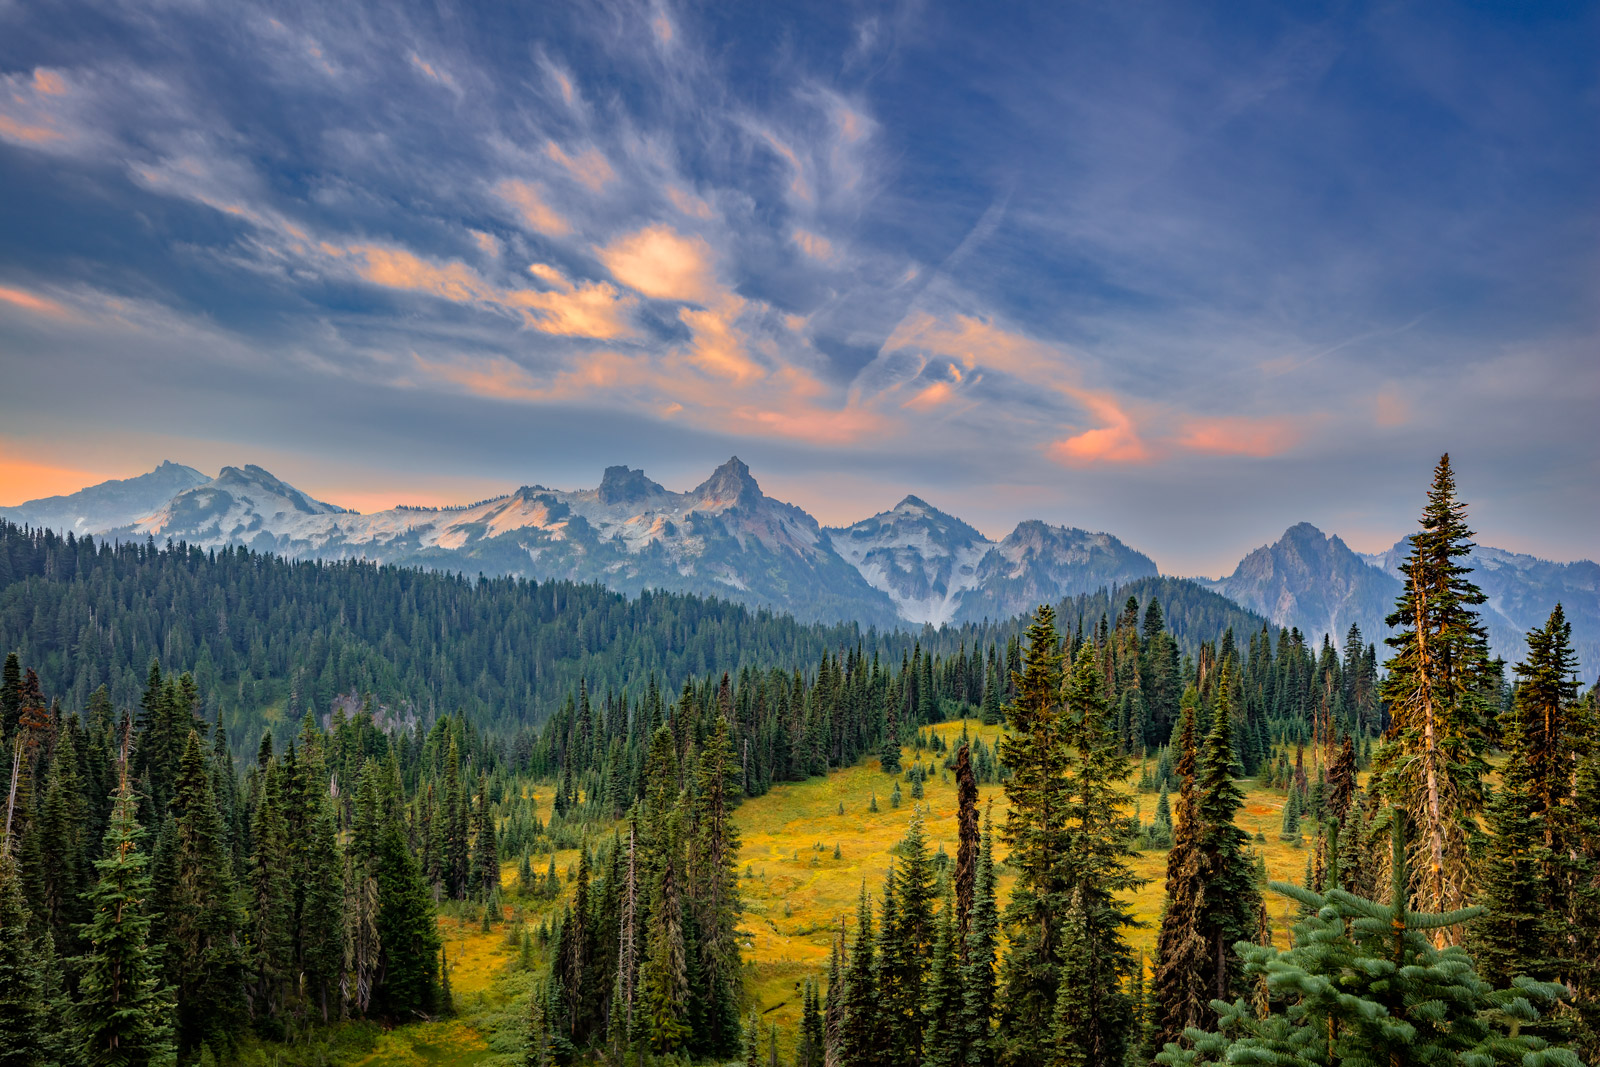 Washington, Mount Rainier, Tatoosh Range, Sunrise